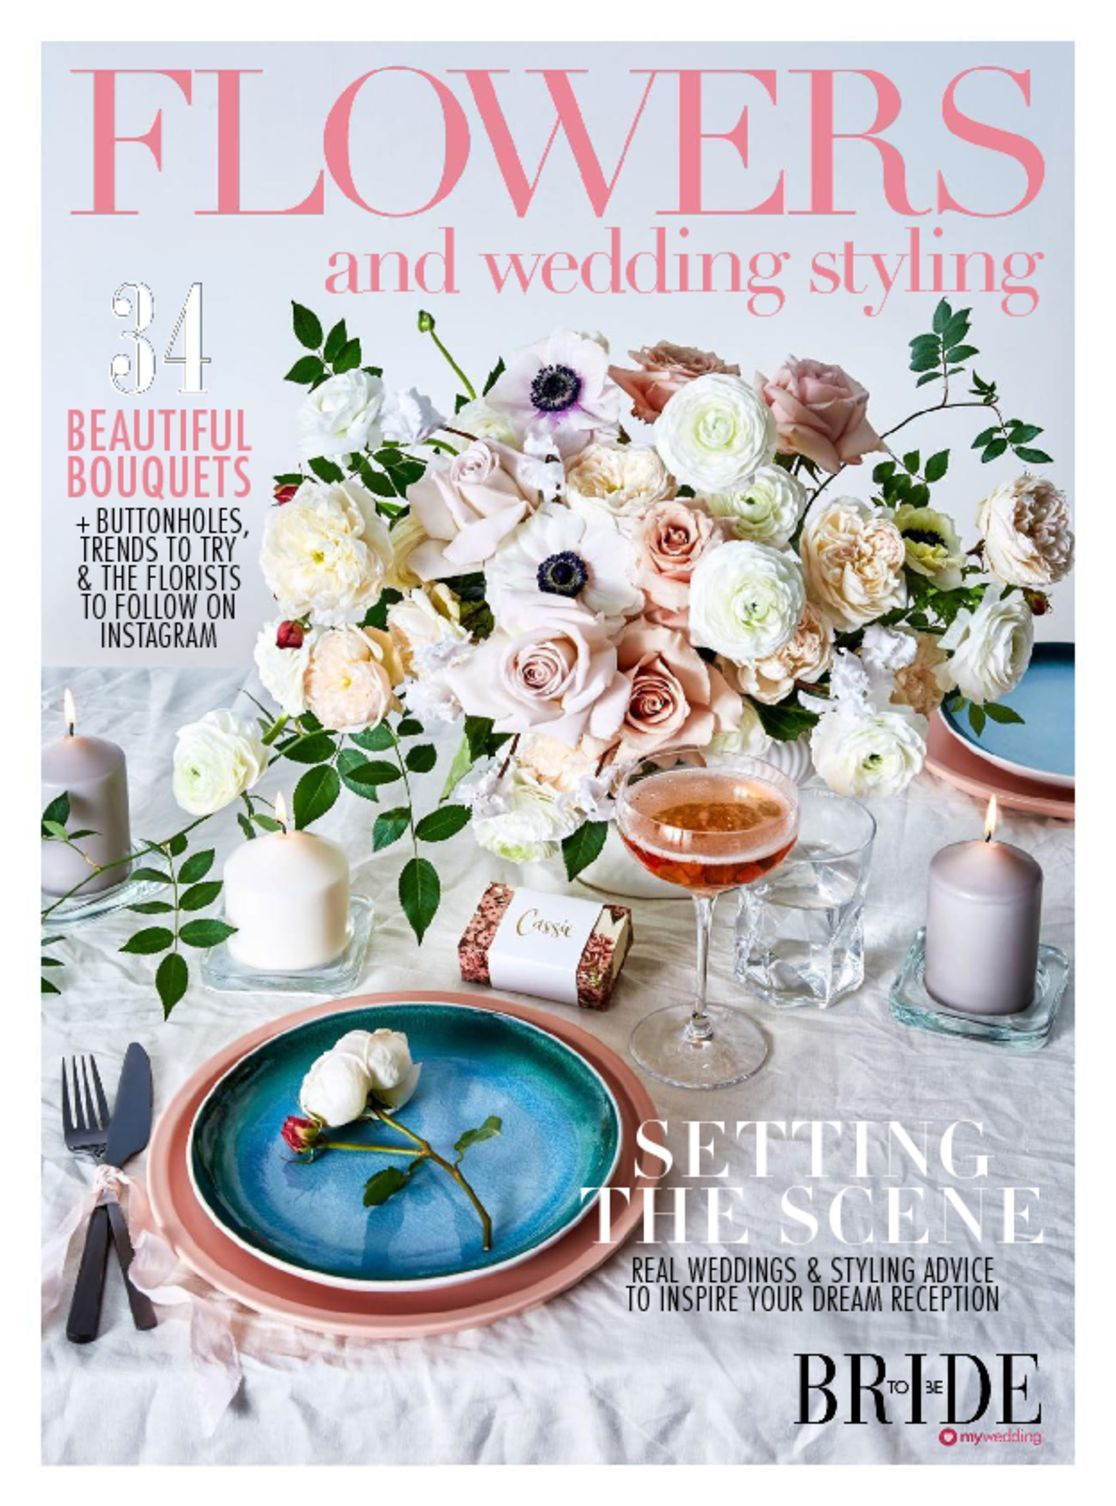 Bride To Be Flowers Wedding Styling Digital